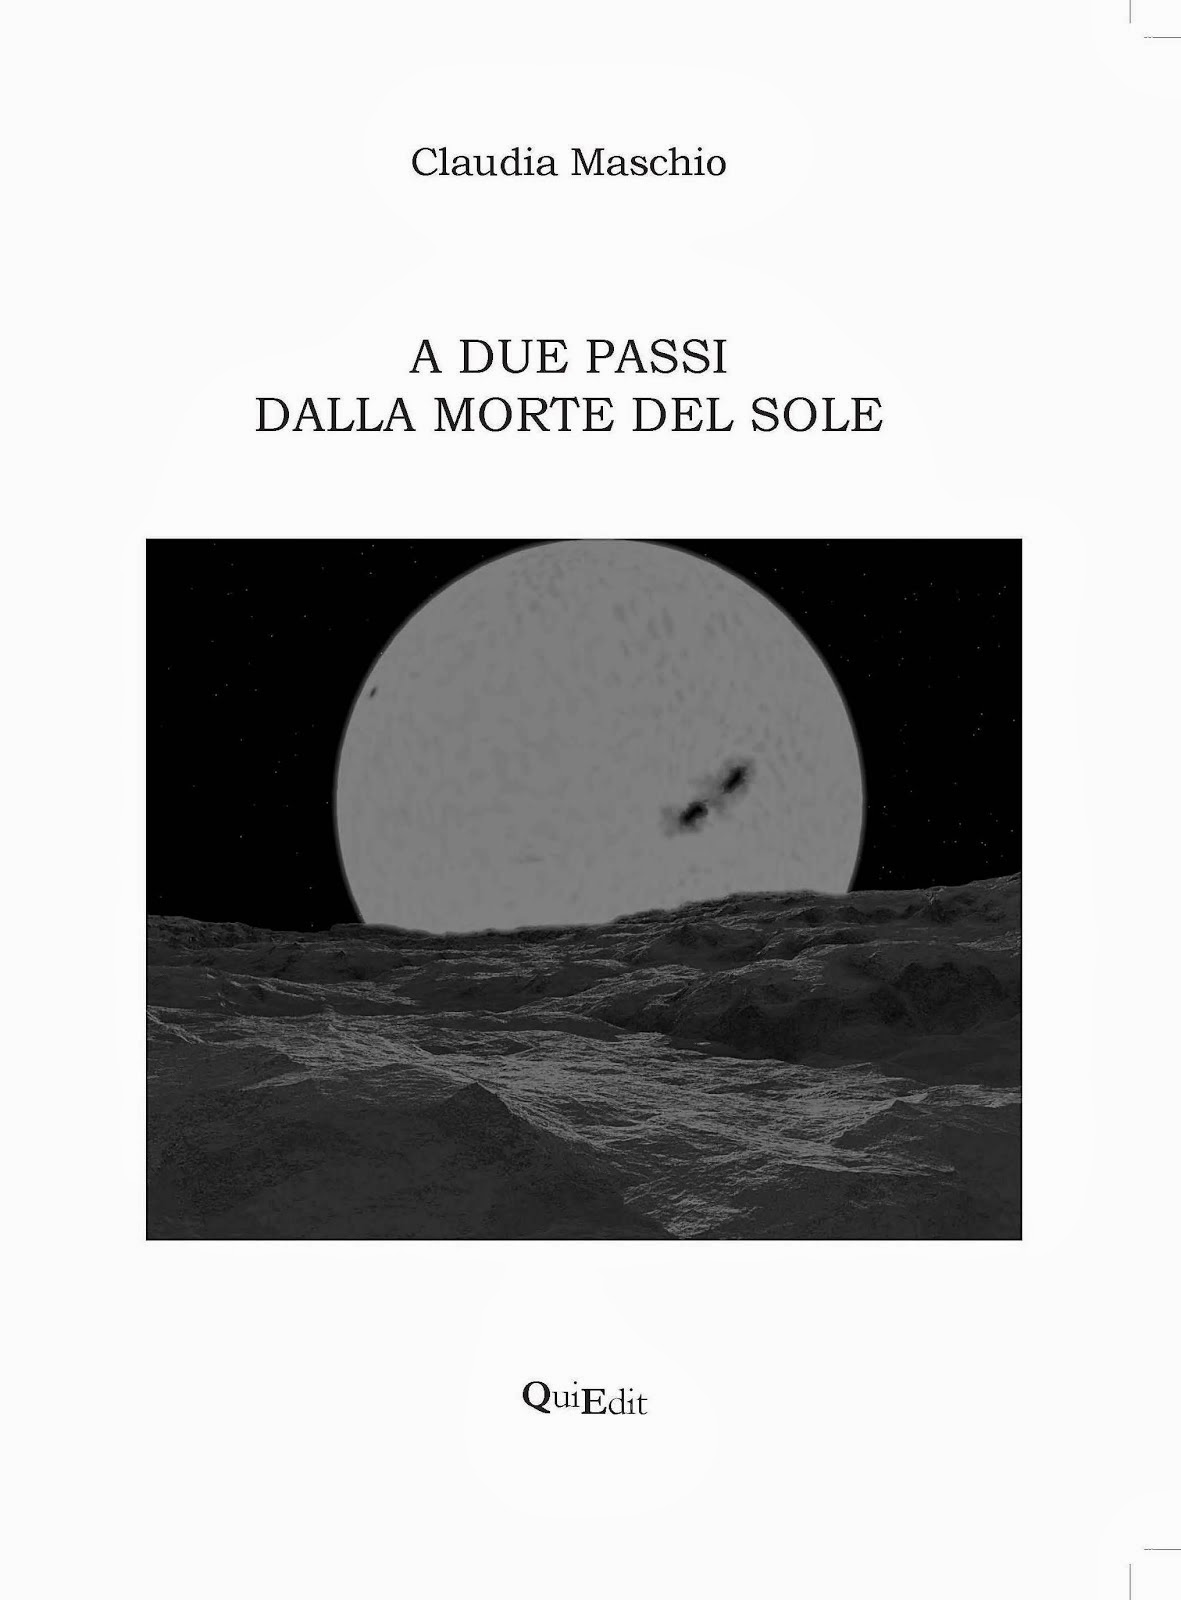 A due passi dalla morte del sole